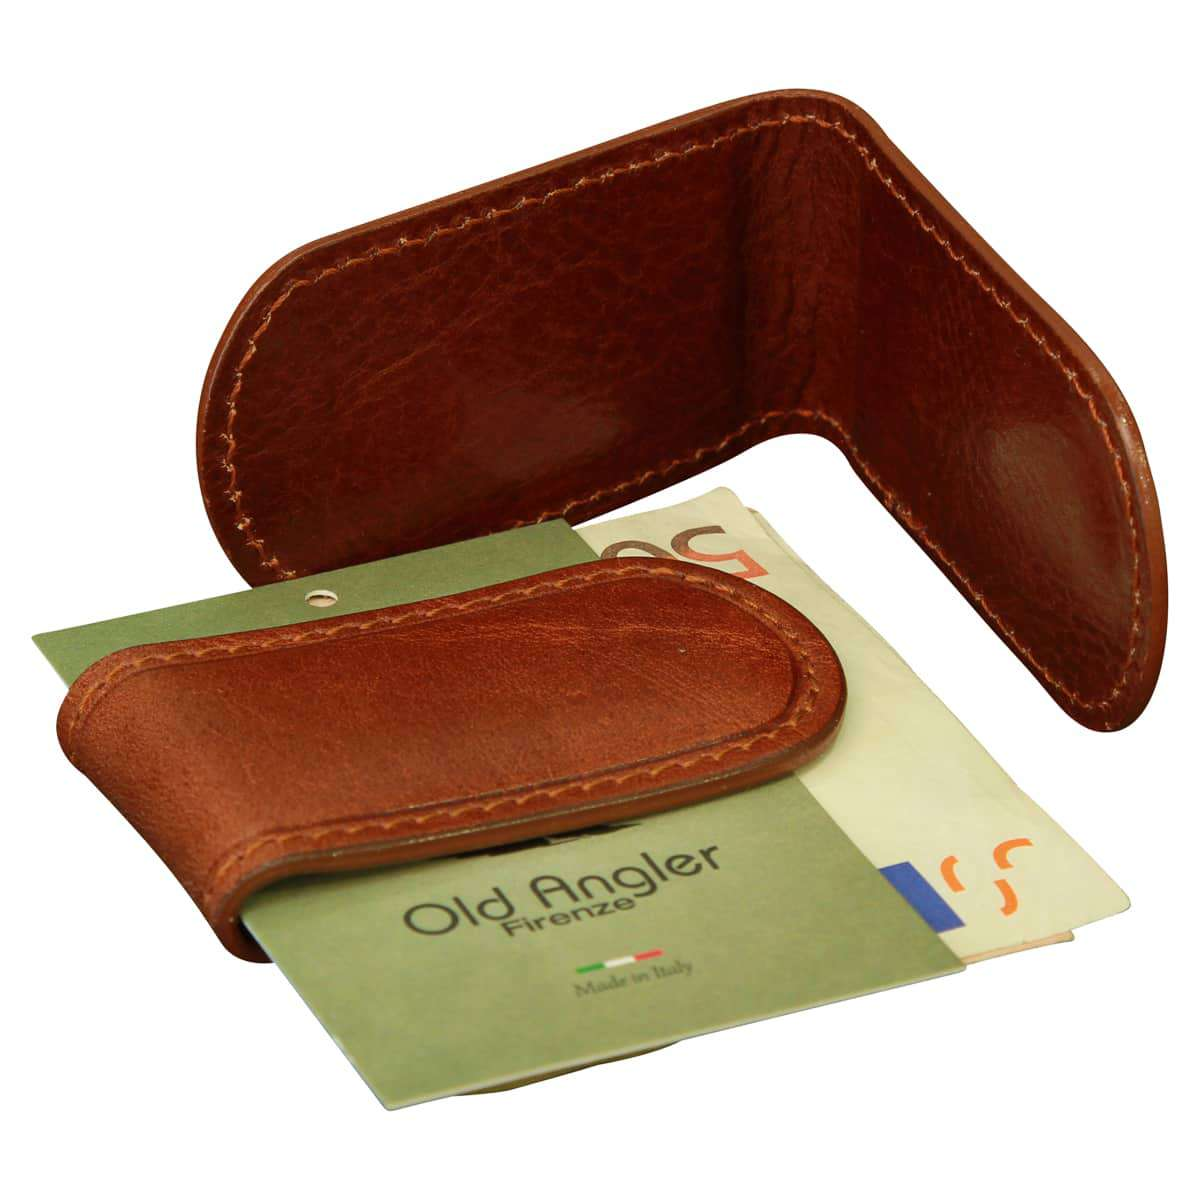 Leather Money Clip - Brown | 809005MA E | Old Angler Firenze